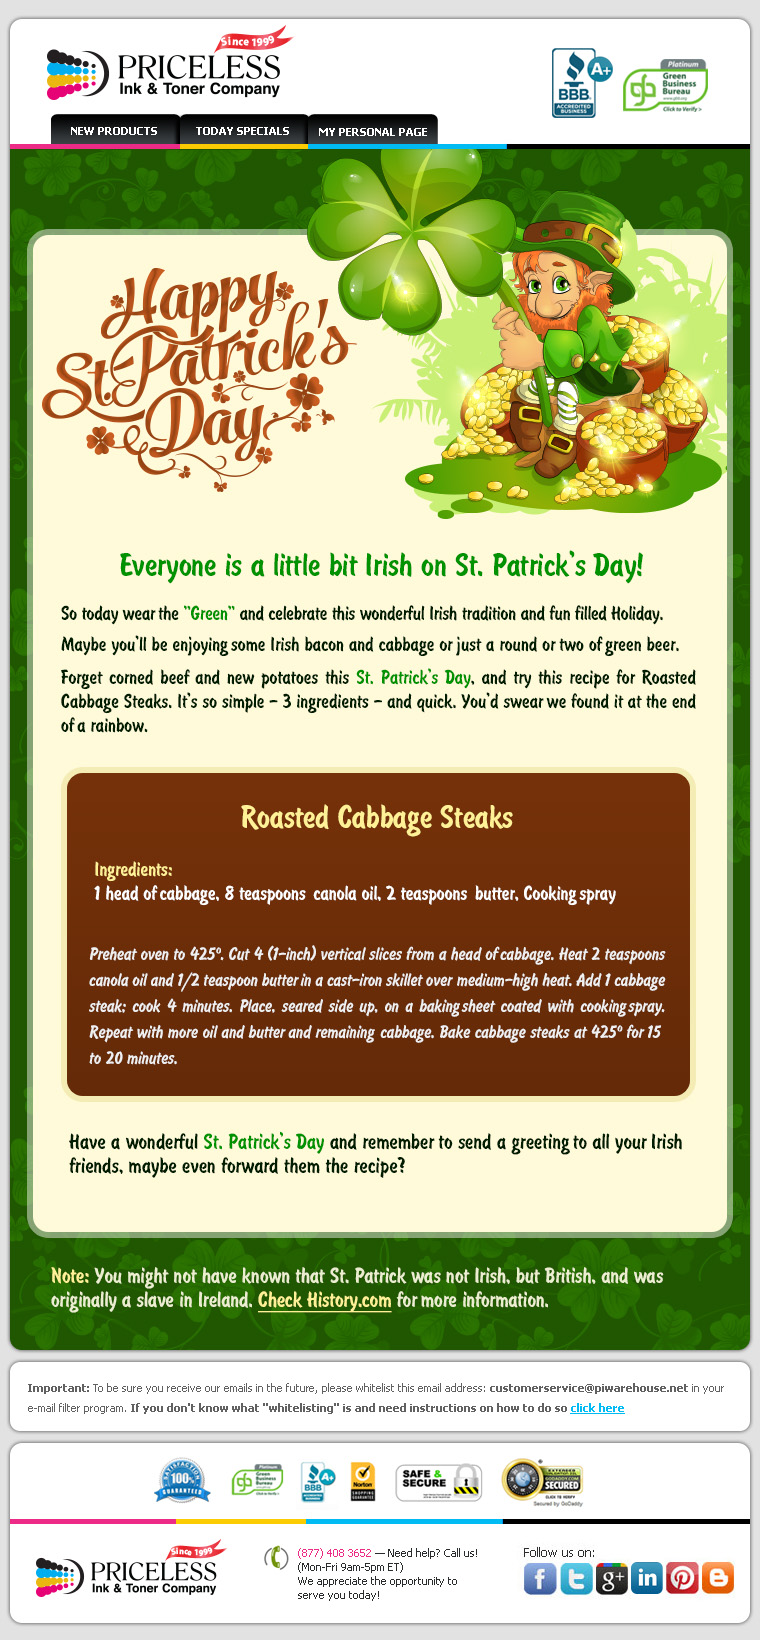 "Everyone is a little bit Irish on St. Patrick's Day! So today wear the ""Green"" and celebrate this wonderful Irish tradition and fun filled Holiday. Maybe you'll be enjoying some Irish bacon and cabbage or just a round or two of green beer. Forget corned beef and new potatoes this St. Patrick's Day, and try this recipe for Roasted Cabbage Steaks. It's so simple - 3 ingredients - and quick. You'd swear we found it at the end of a rainbow. Roasted Cabbage Steaks. Ingredients: 1 head of cabbage, 8 teaspoons canola oil, 2 teaspoons butter, Cooking spray. Preheat oven to 425 degrees. Cut 4 (1-inch) vertical slices from a head of cabbage. Heat 2 teaspoons canola oil and 1/2 teaspoon butter in a cast-iron skillet over medium-high heat. Add 1 cabbage steak; cook 4 minutes. Place, seared side up, on a baking sheet coated with cooking spray. Repeat with more oil and butter and remaining cabbage. Bake cabbage steaks at 425 degrees for 15 to 20 minutes. Have a wonderful St. Patrick's Day and remember to send a greeting  to all your  Irish friends, maybe even forward them the recipe?"